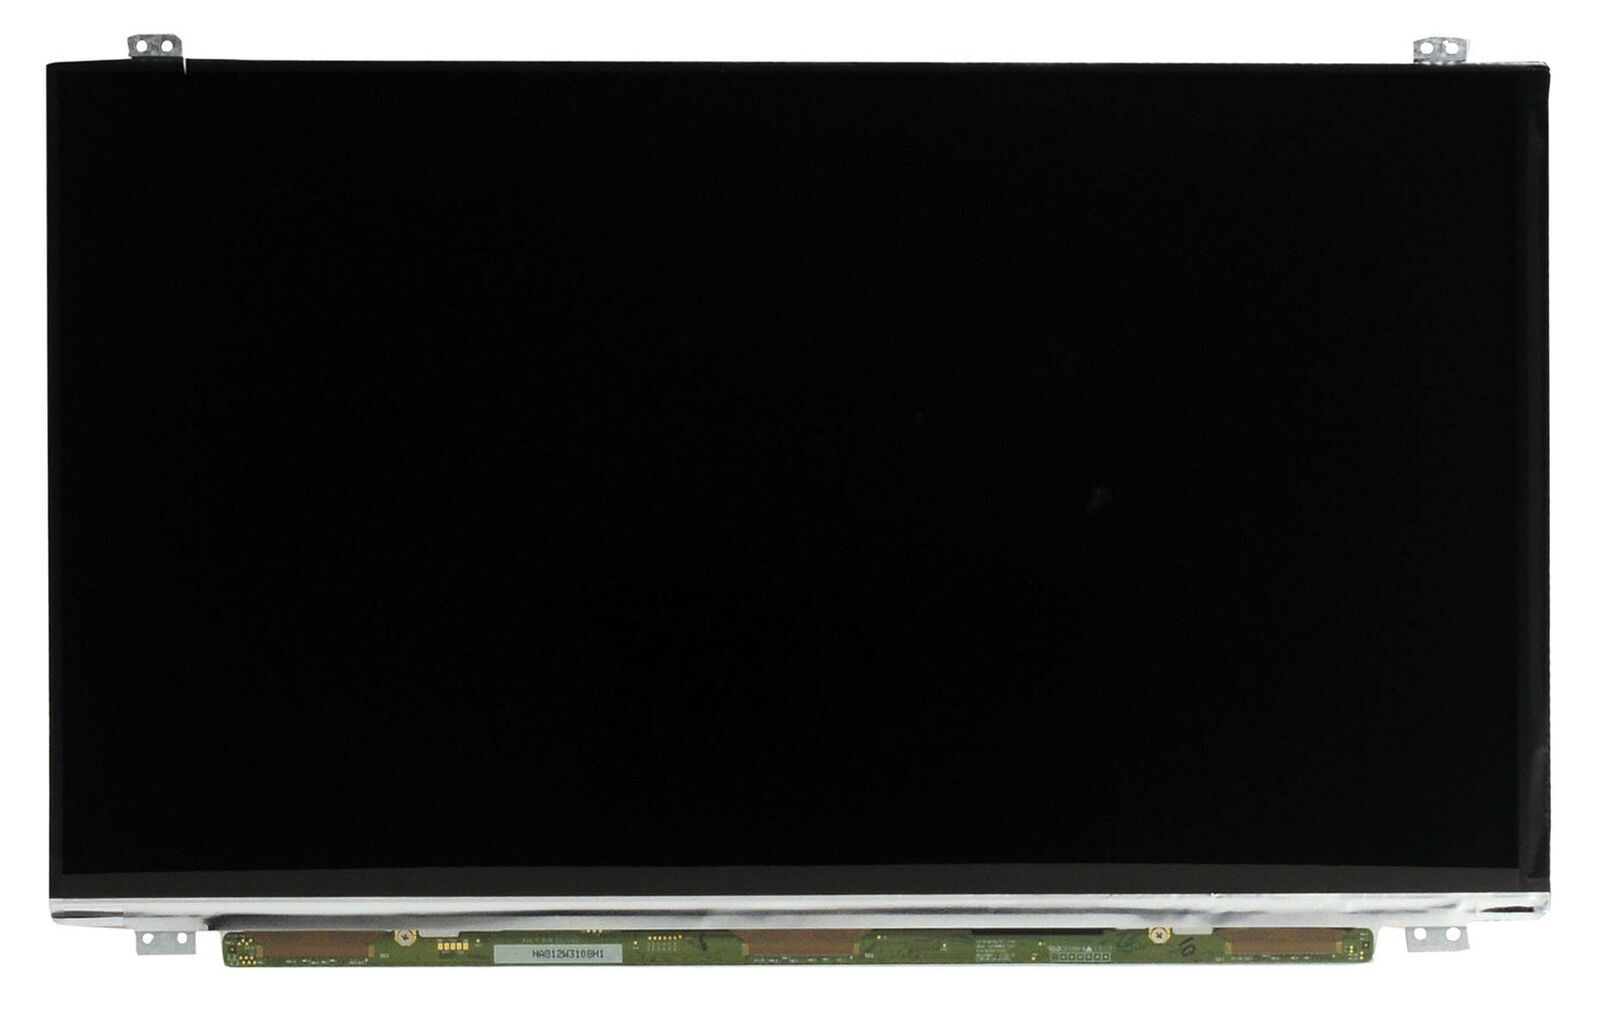 Tela 15.6 Led Slim Para Sony Vaio Sve151d11x Series 1366x768 40 pin - EASY HELP NOTE